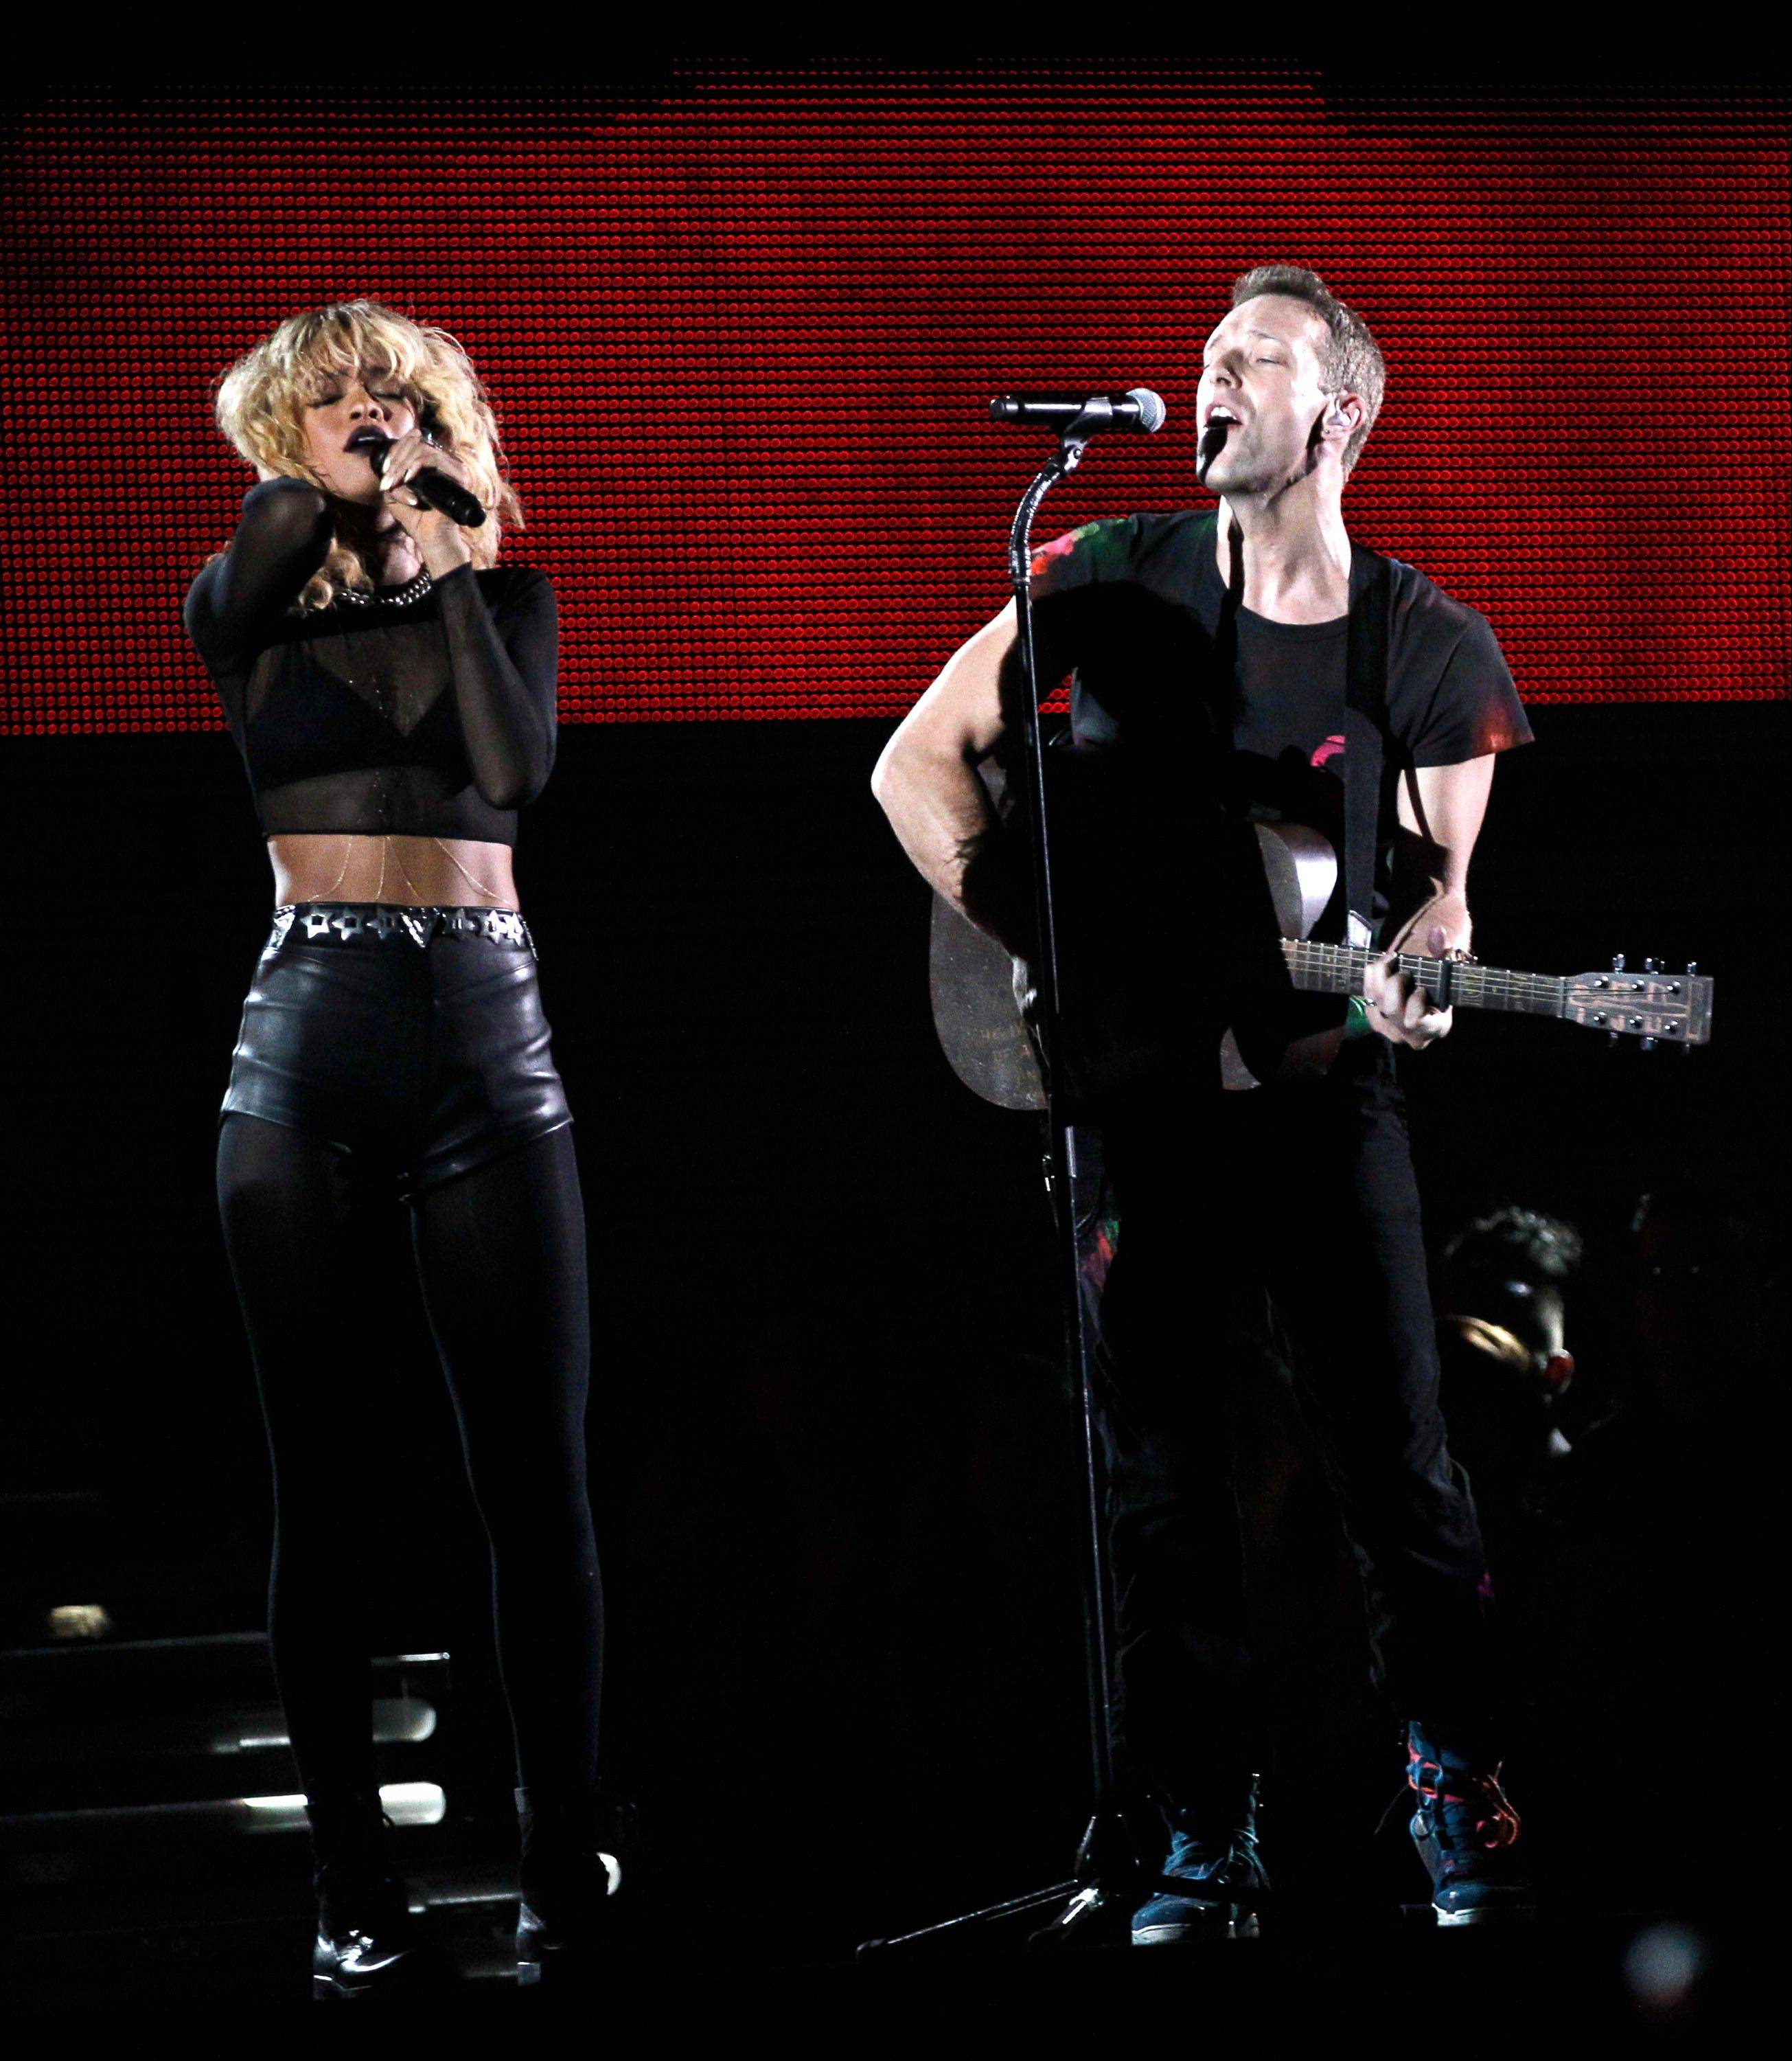 Rihanna, left, and Chris Martin of the band Coldplay perform Sunday during the 54th annual Grammy Awards in Los Angeles.